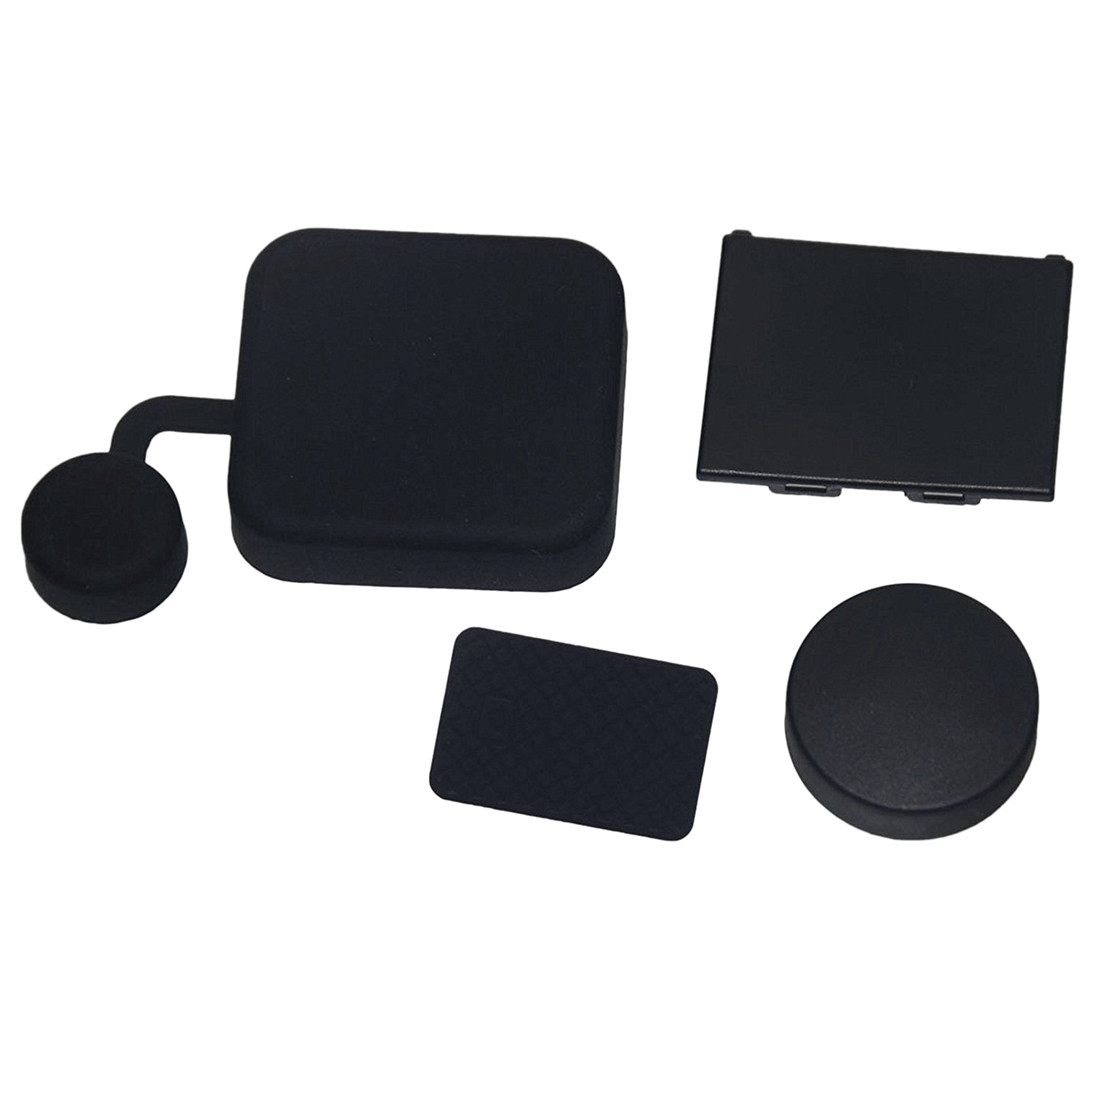 Image 5 - 4 In 1 Housing Lens Cover+Lens Cap +Replacement Battery Door+Side Door Cover for GoPro Hero 4/3+ Camera-in Sports Camcorder Cases from Consumer Electronics